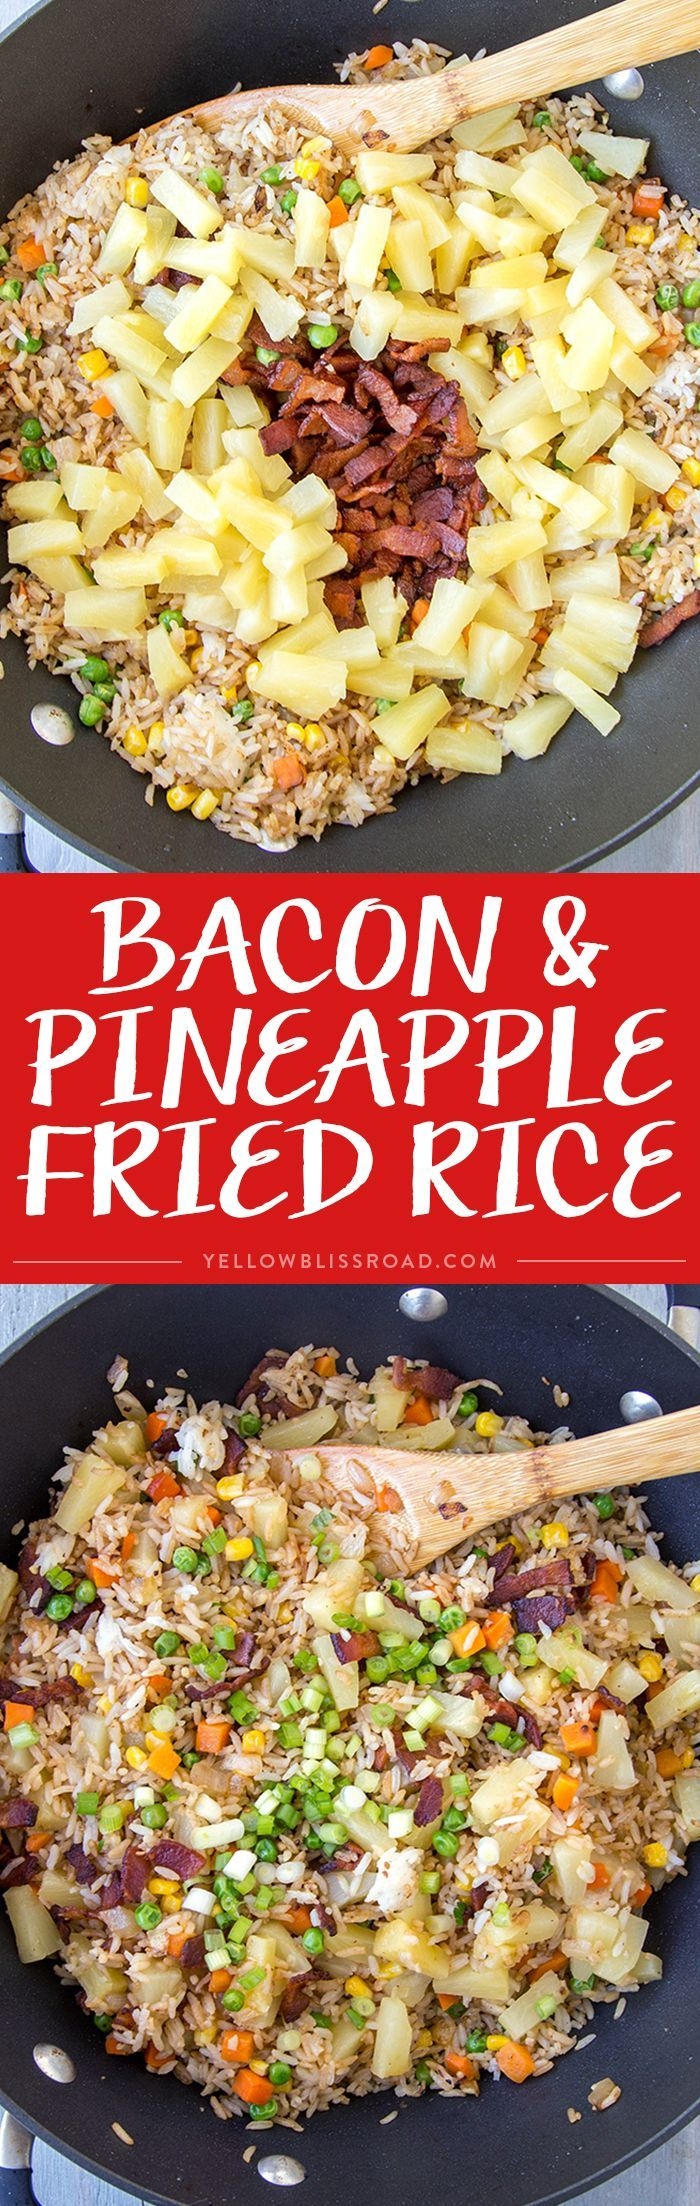 This Bacon & Pineapple Fried Rice is full of sweet pineapple and salty, crunchy bacon. It's ready in less than 15 minutes and makes a delicious side dish or entree any day of the week.                                                                                                                                                     More